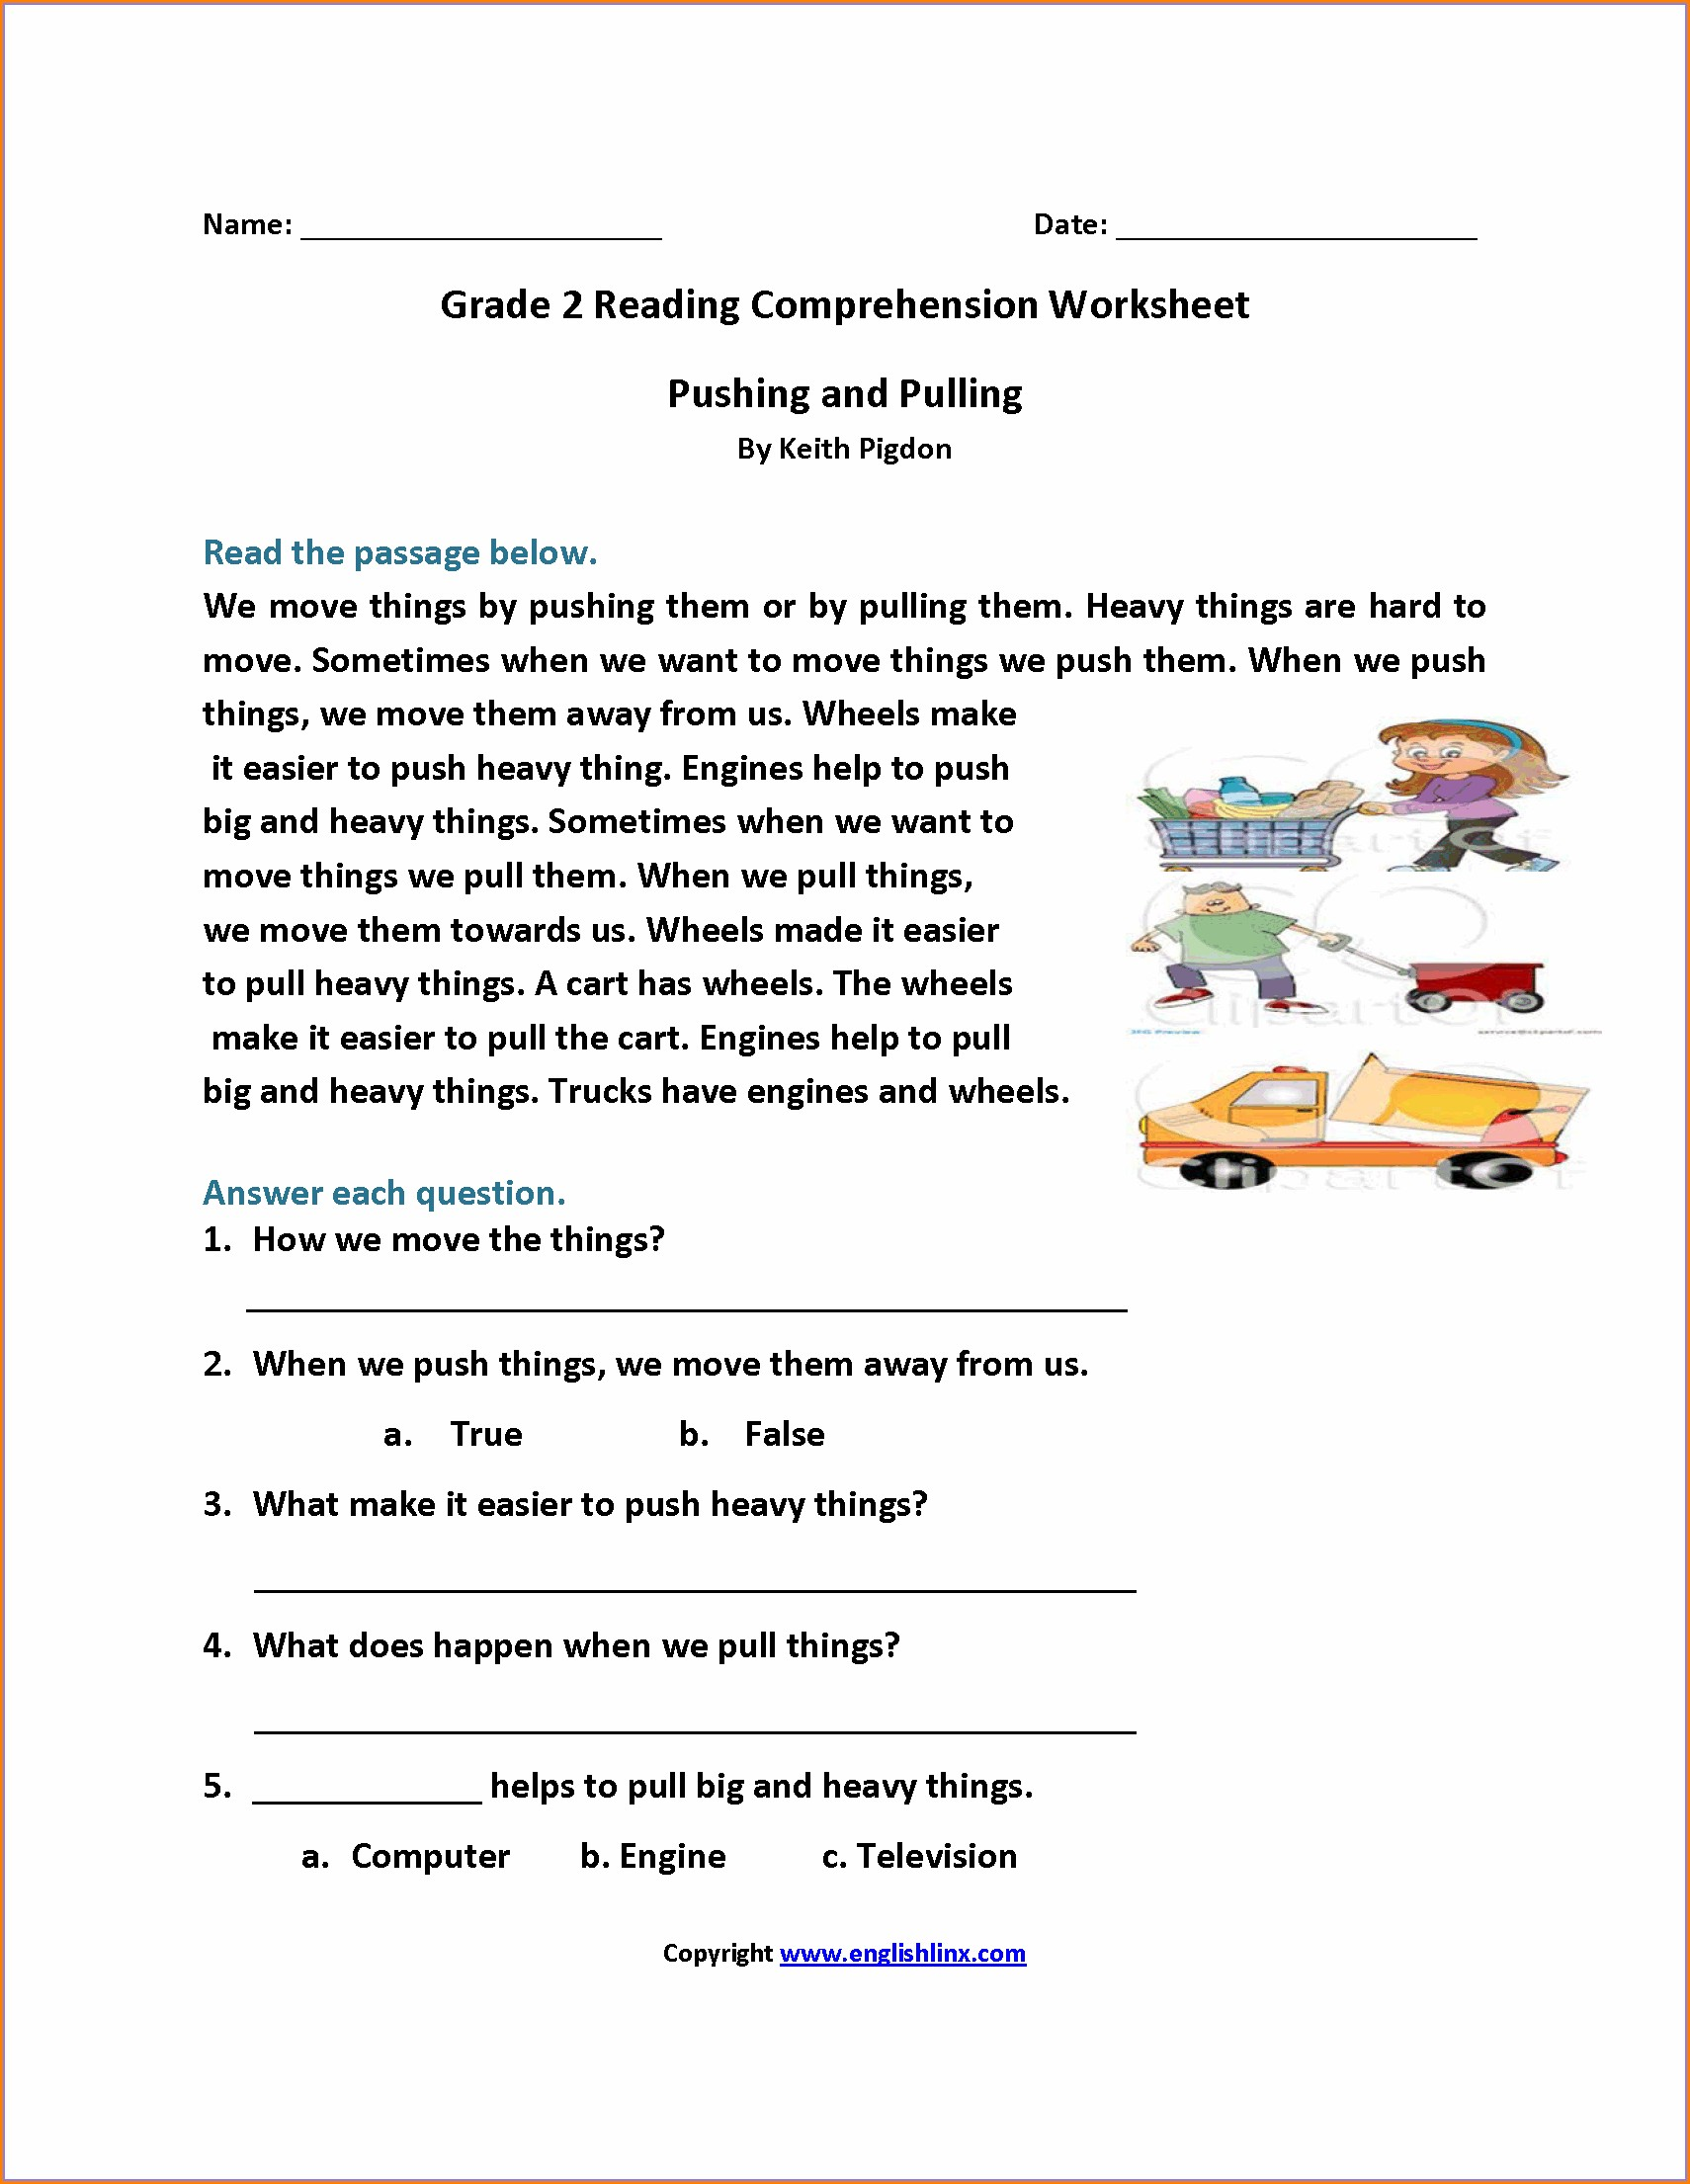 hight resolution of Homeschooling Worksheets Grand Canyon   Printable Worksheets and Activities  for Teachers